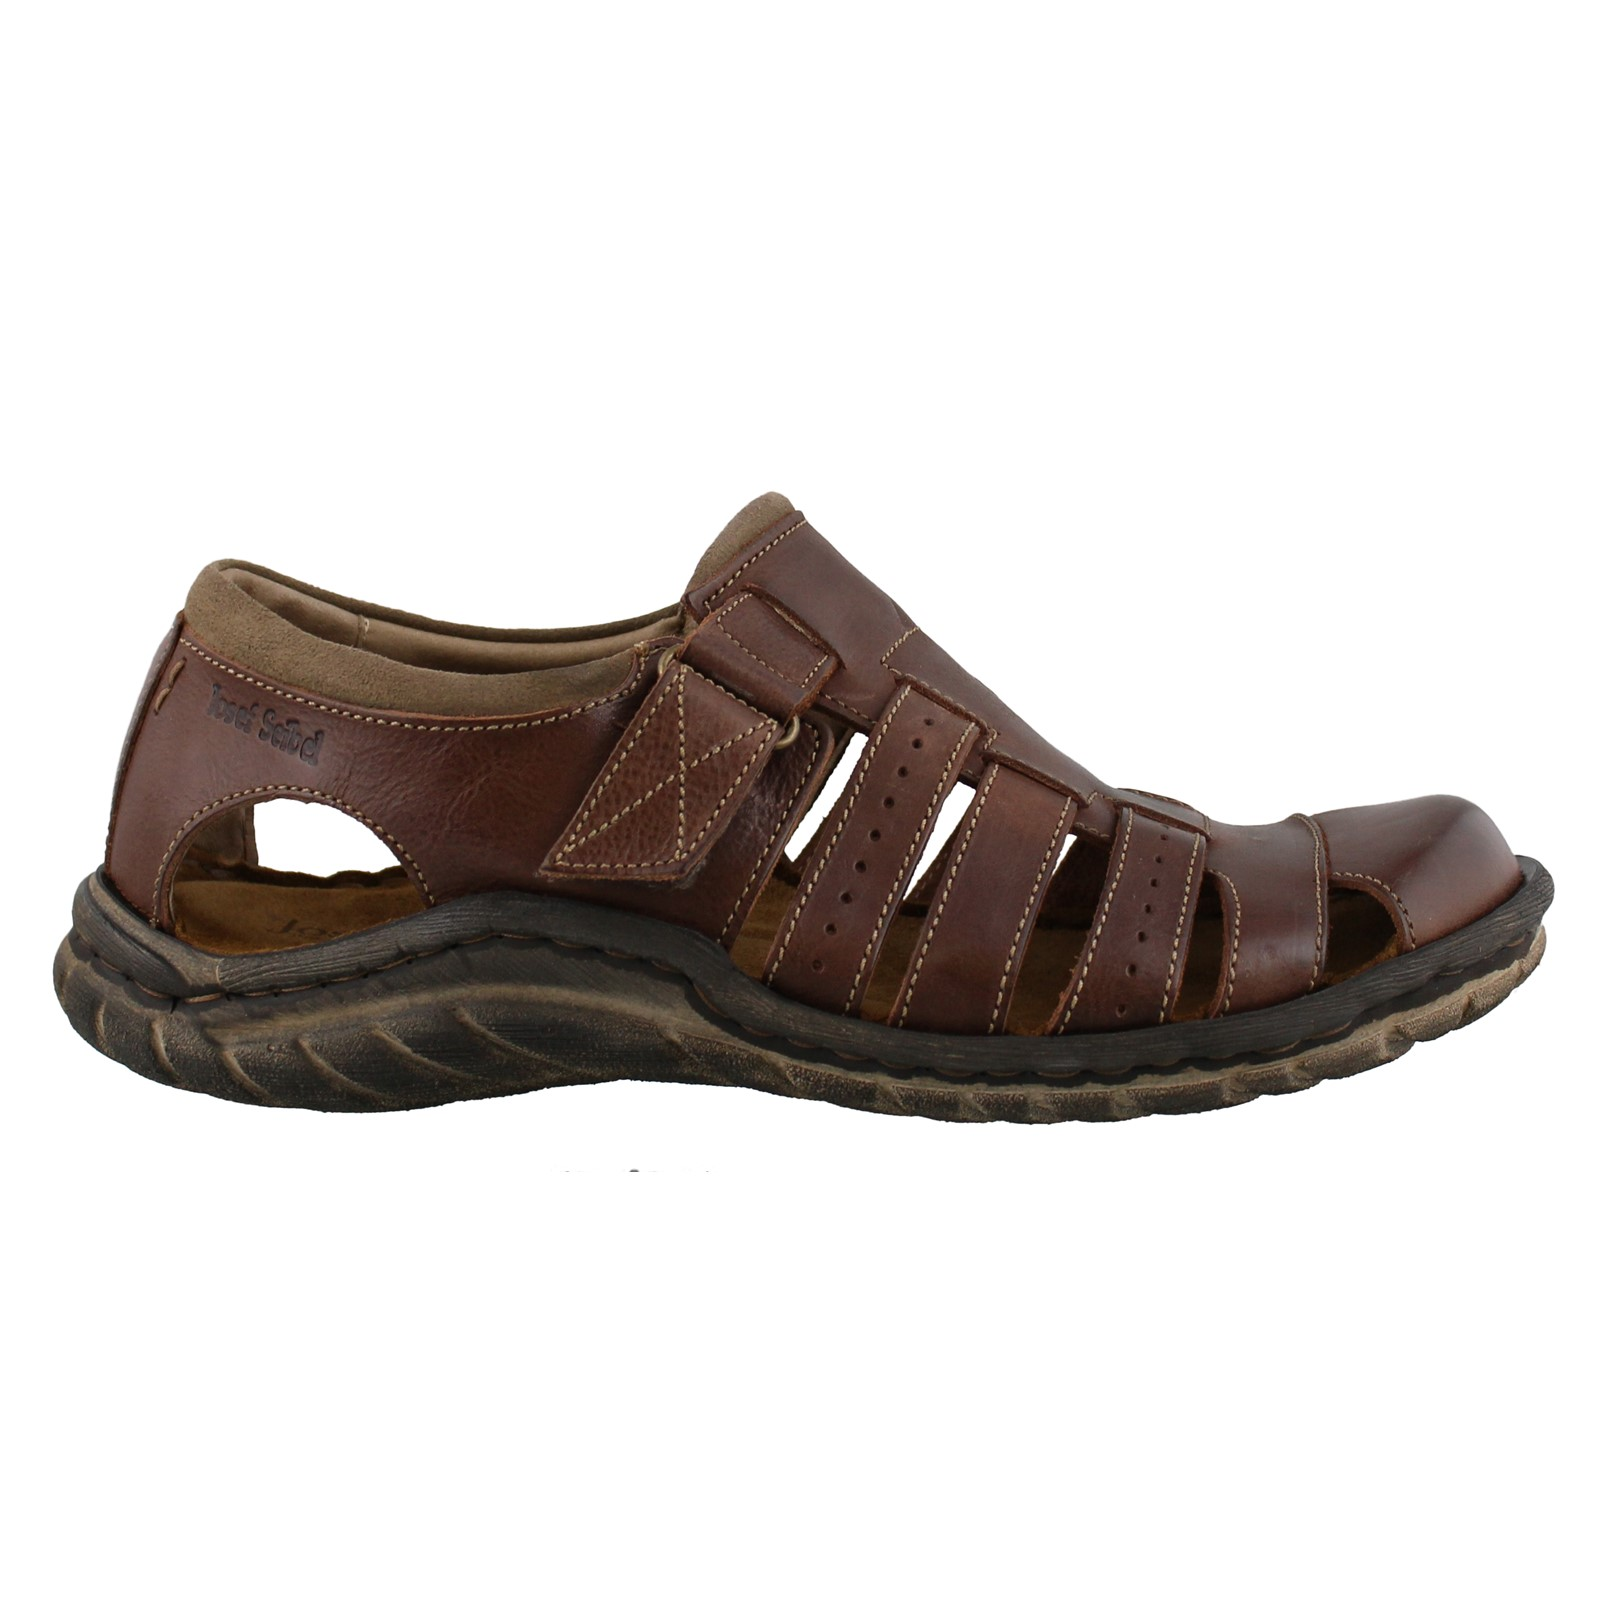 Men's Josef Seibel, Nico 19 Fisherman Sandals